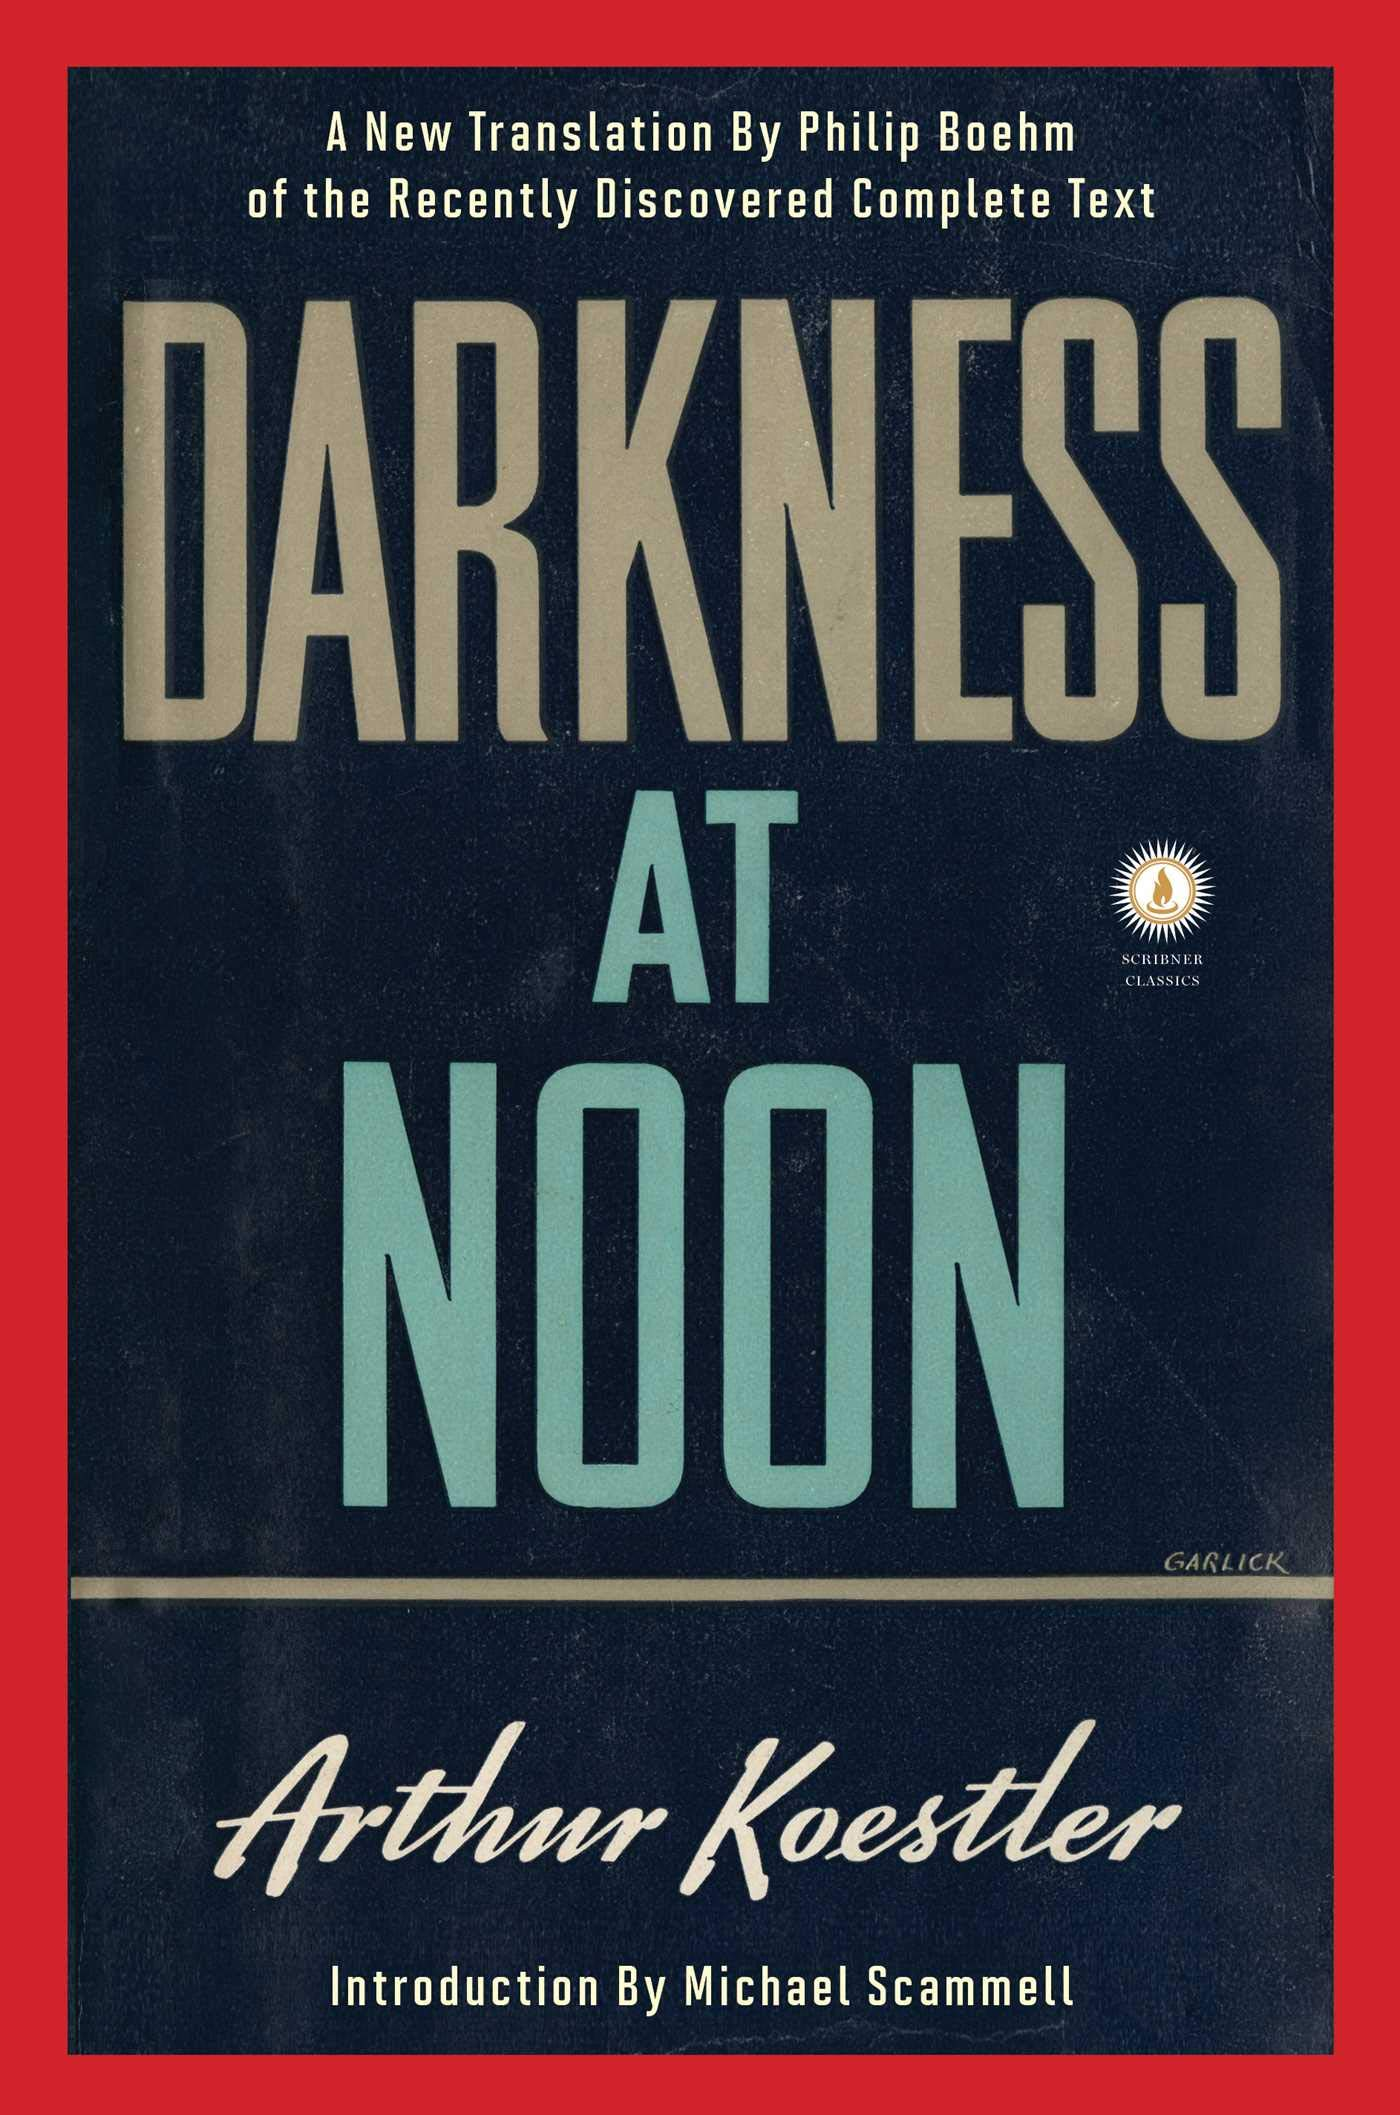 darkness at noon audiobook